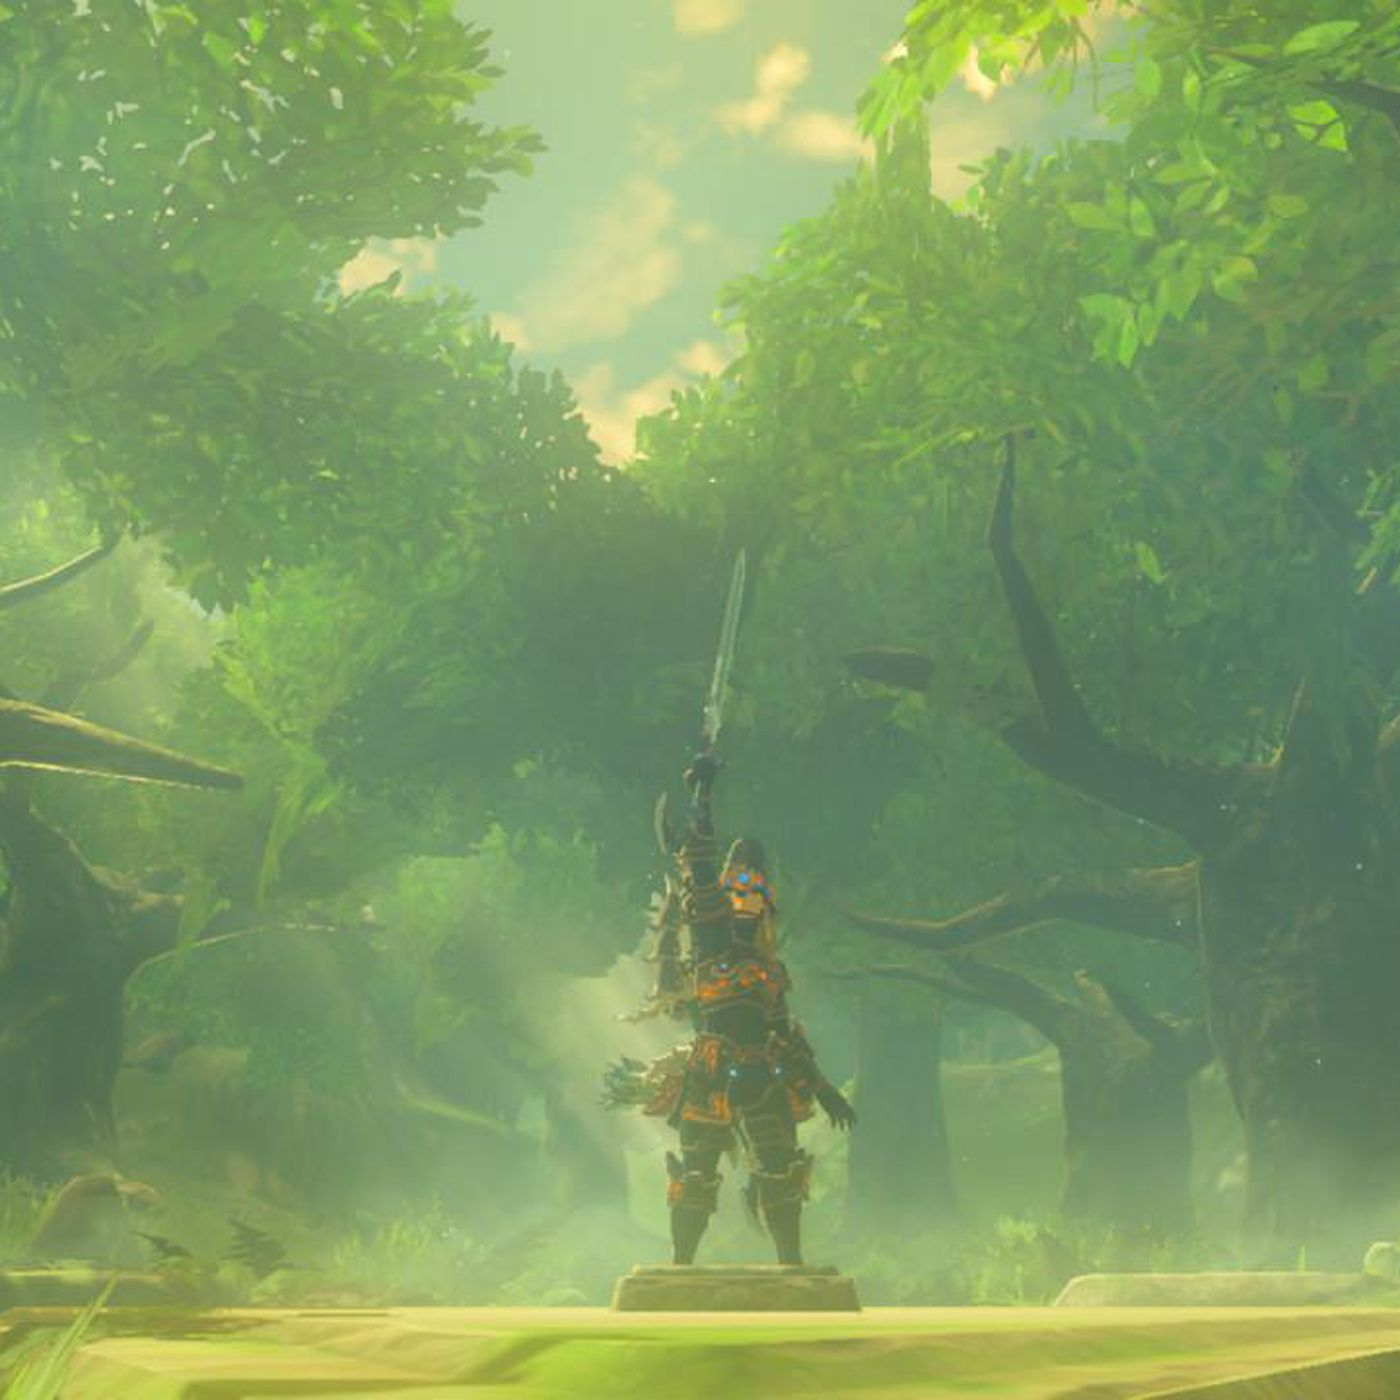 Zelda: Breath of the Wild's early game is easy to grind for